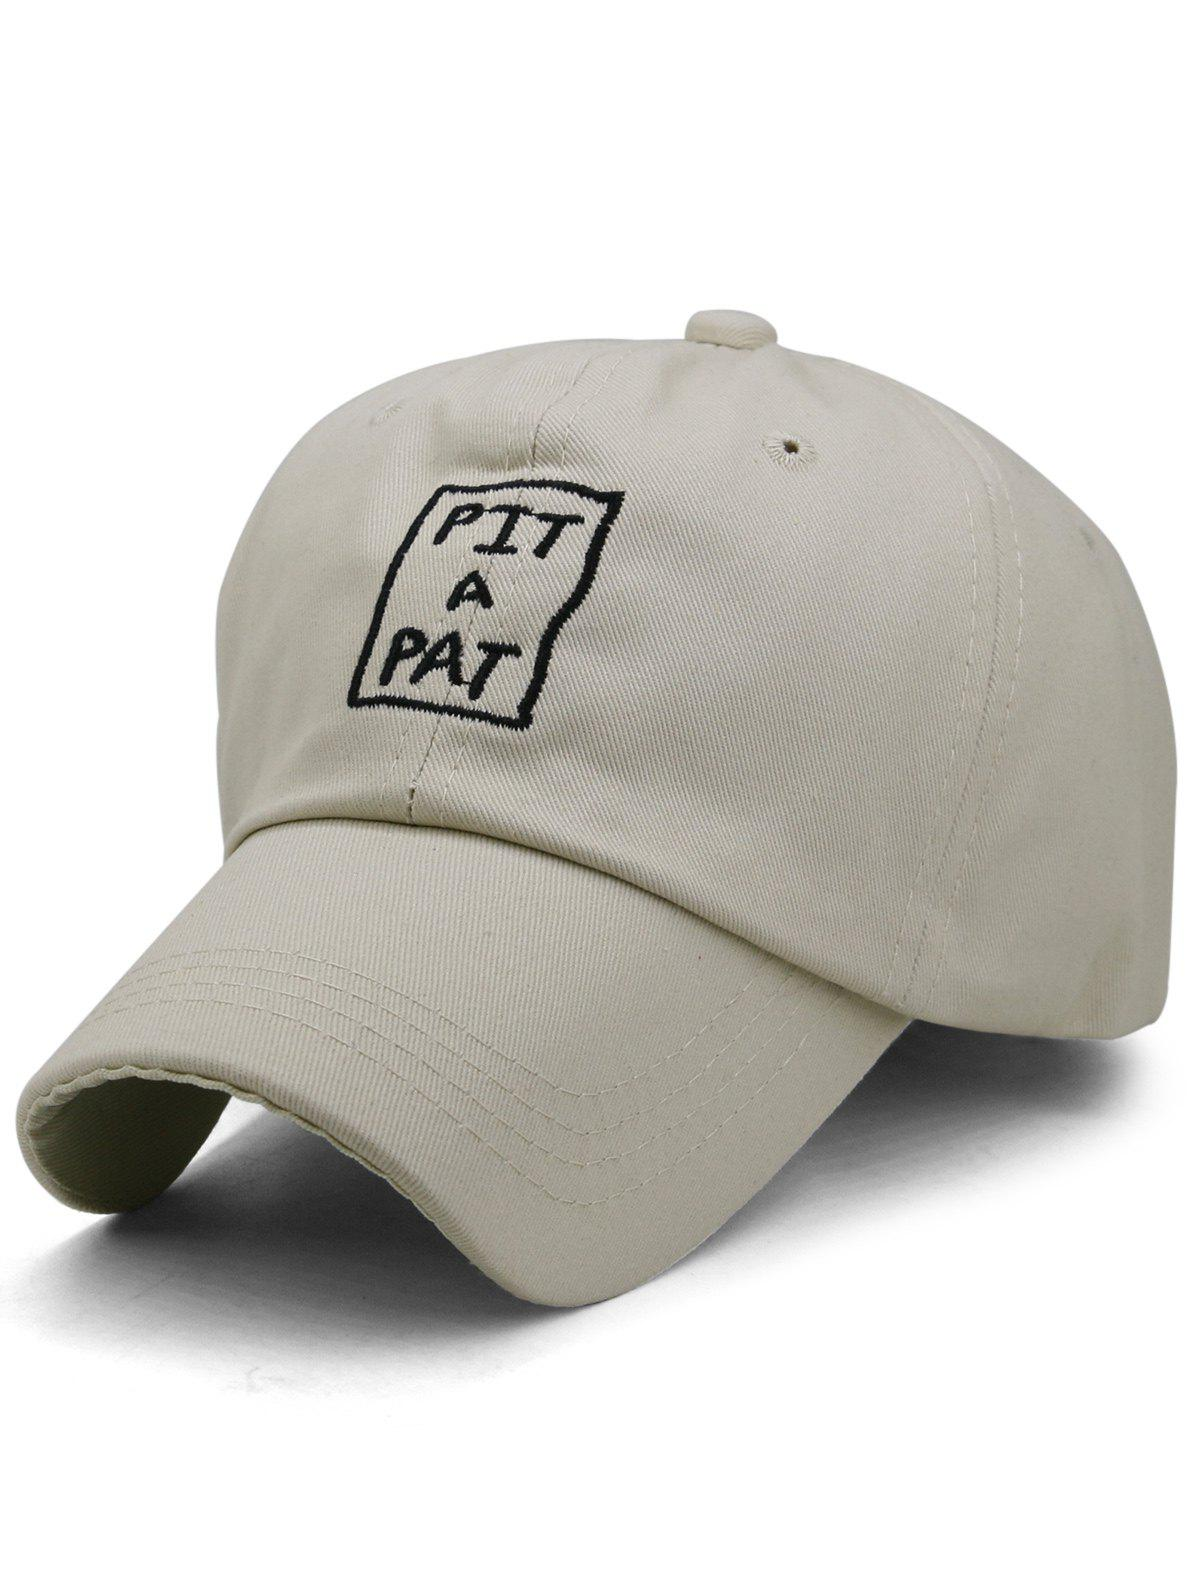 Sale PIT A PAT Embroidery Adjustable Graphic Hat